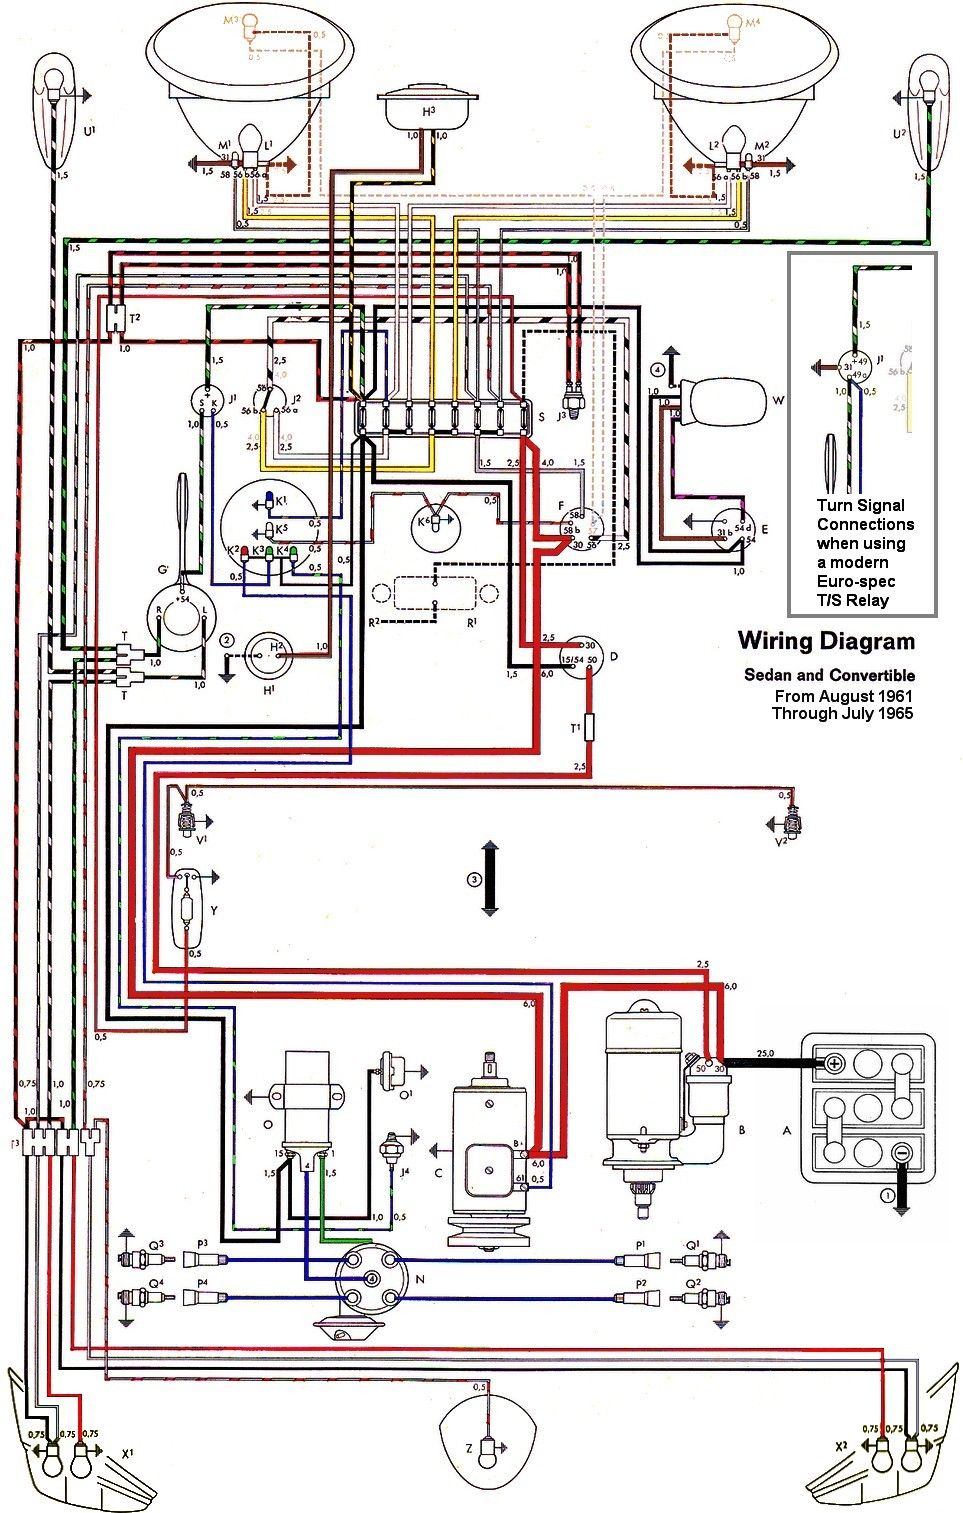 wiring diagram vw beetle sedan and convertible 1961 1965 vw 74 beetle fuse box wiring diagram wiring diagram vw beetle sedan and convertible 1961 1965